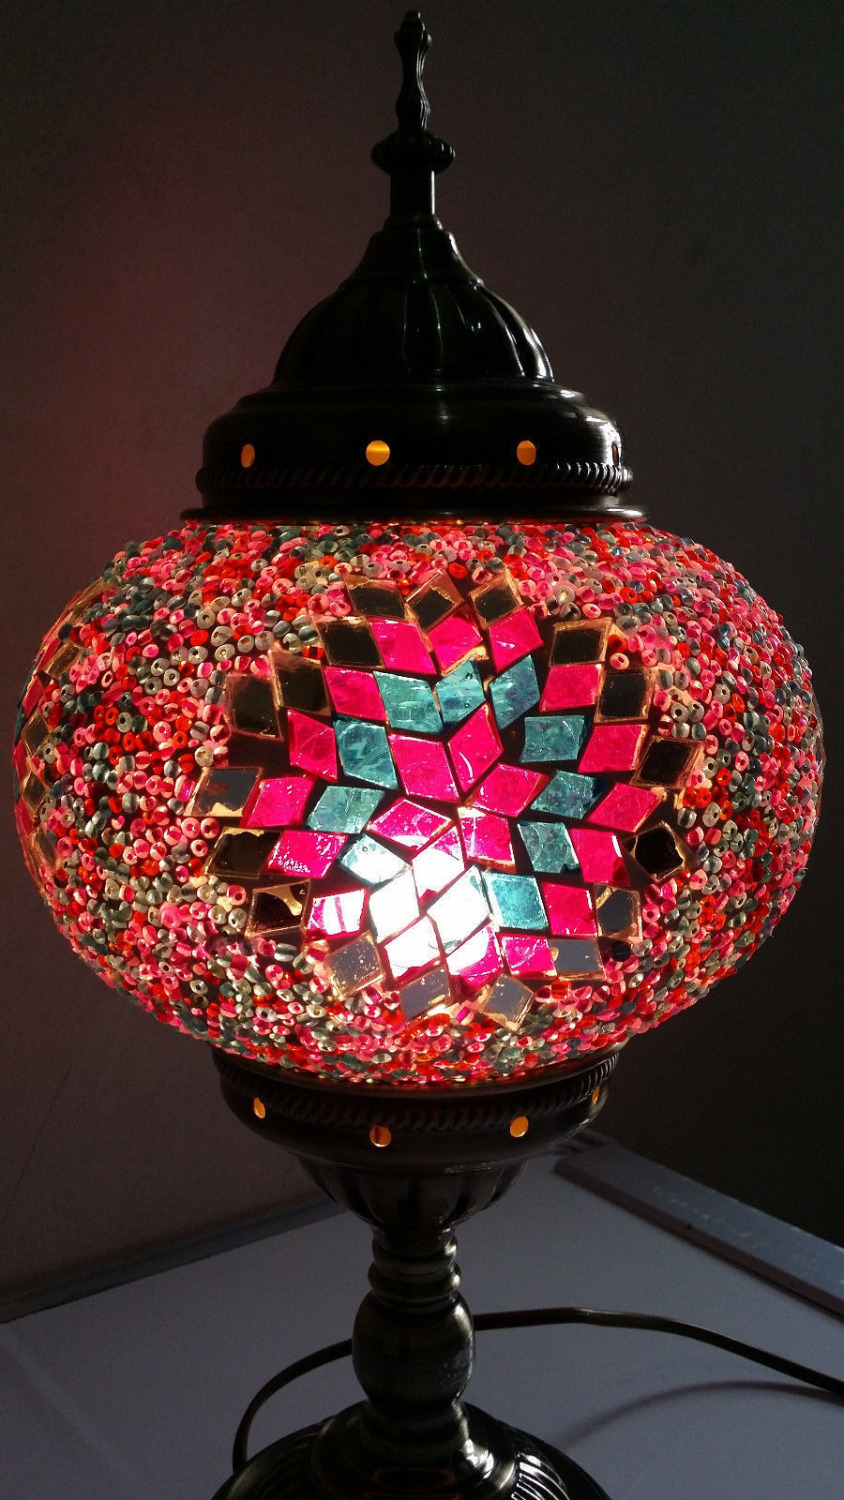 Turkish moroccan handmade mosaic red stained glass table lamp hand turkish moroccan handmade mosaic red stained glass table lamp hand craft desk lamp new in table lamps from lights lighting on aliexpress alibaba geotapseo Gallery